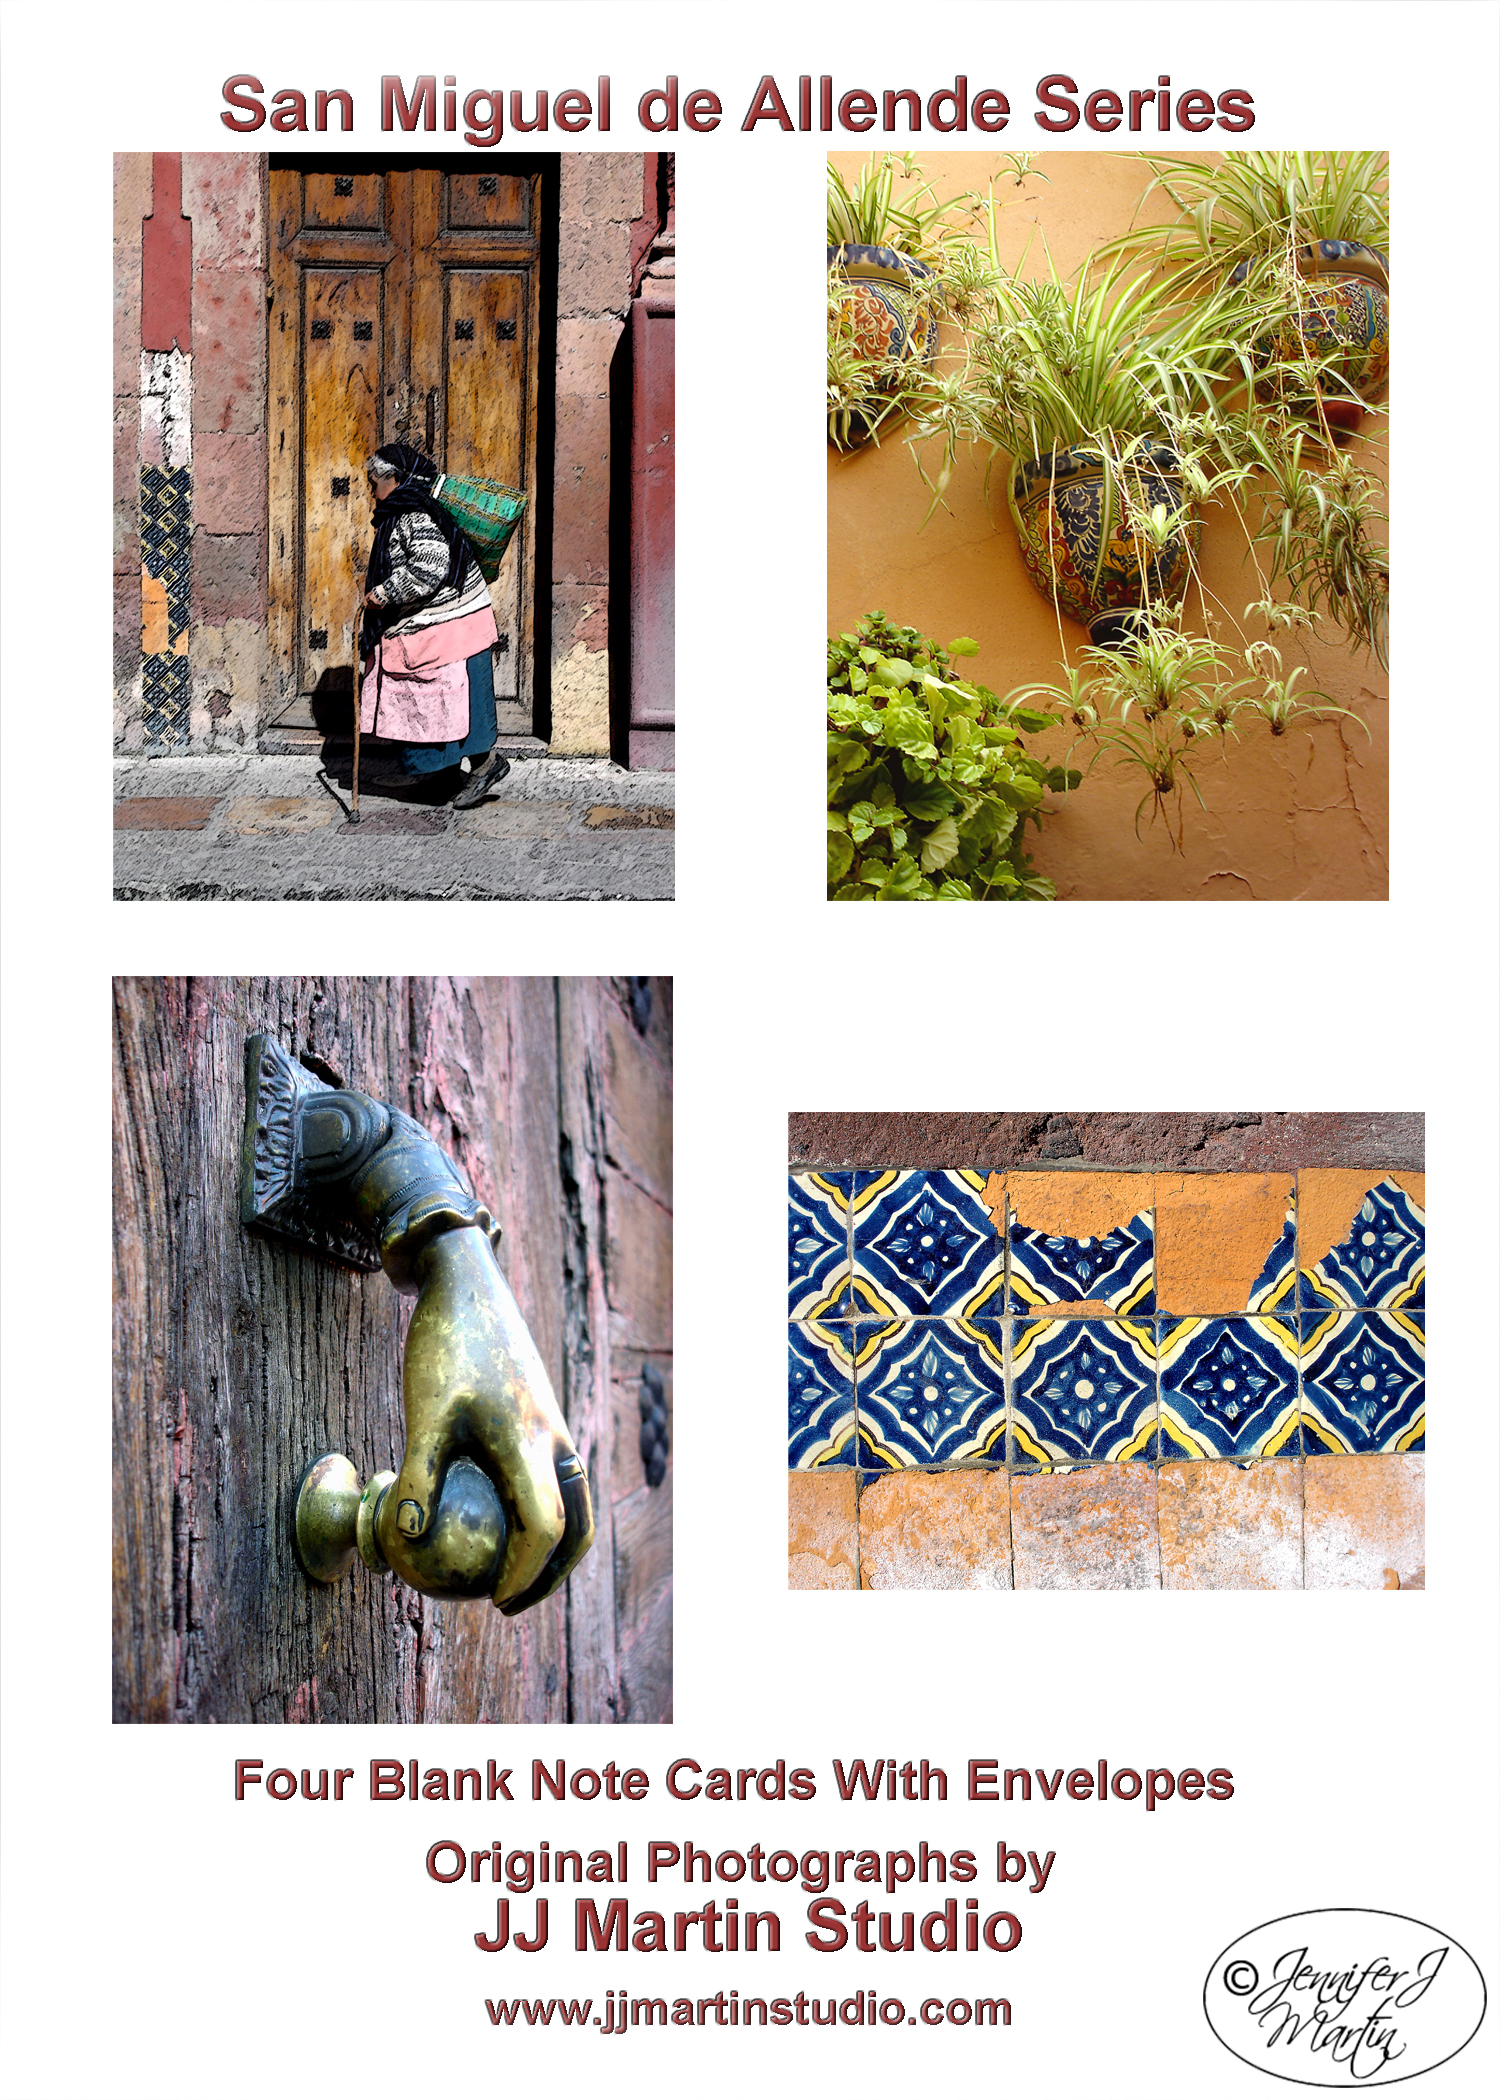 San Miguel de Allende Series (Old Woman Walking) - 4 Card Set